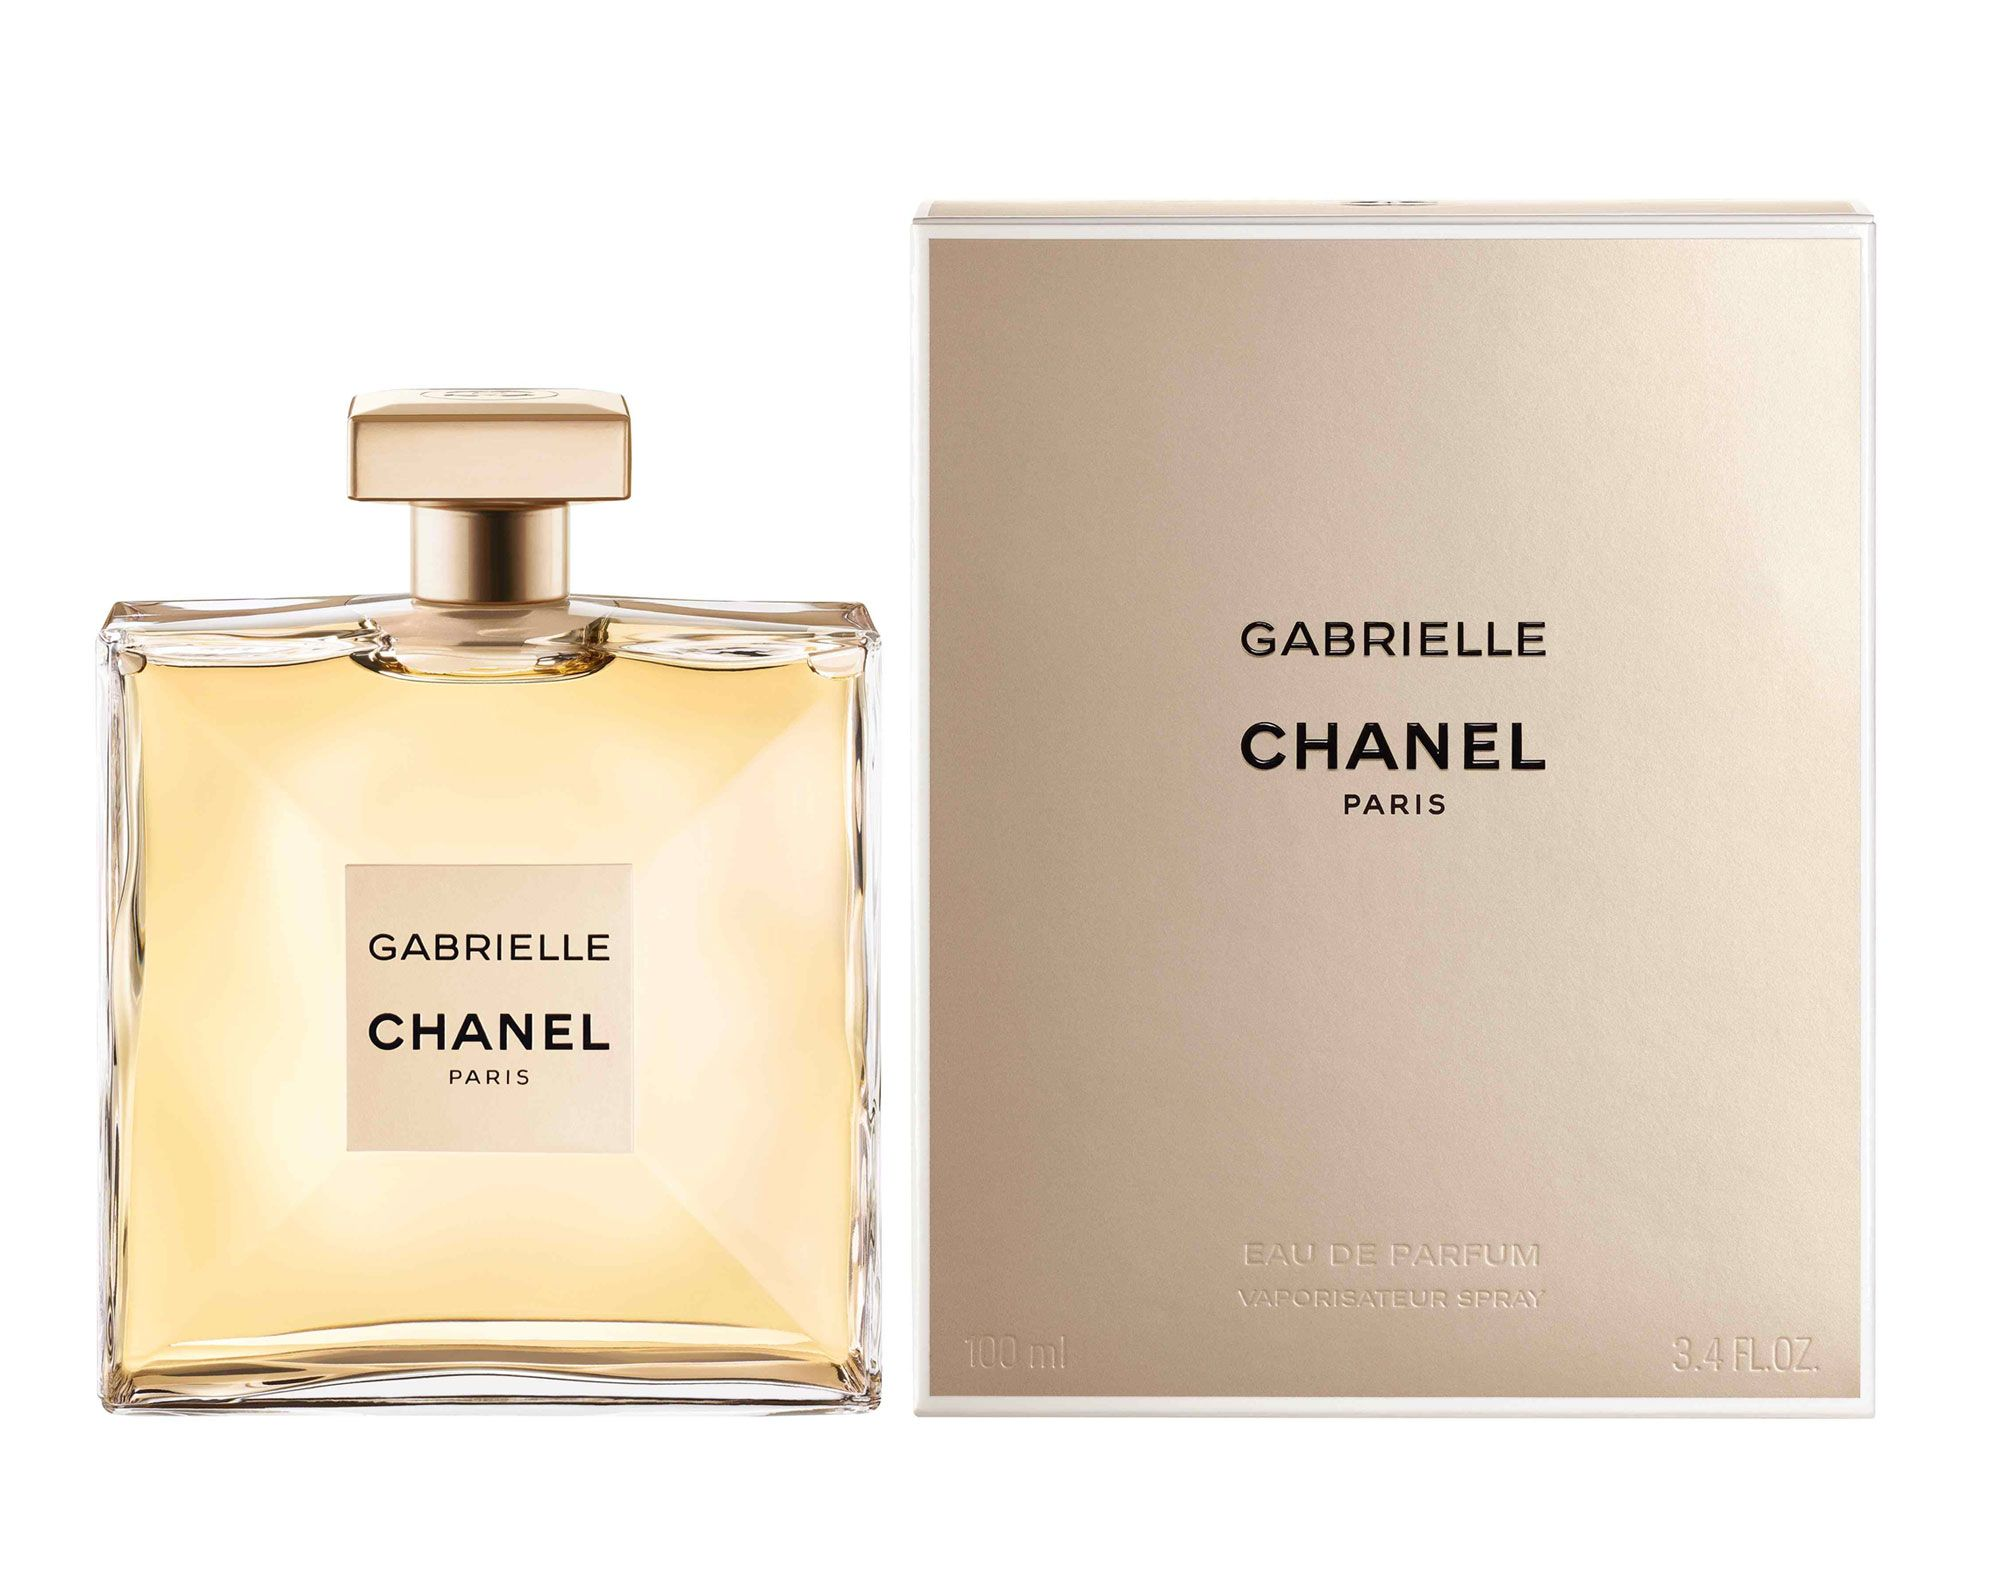 Gabrielle By Chanel Is A Floral Fragrance For Women This Is A New